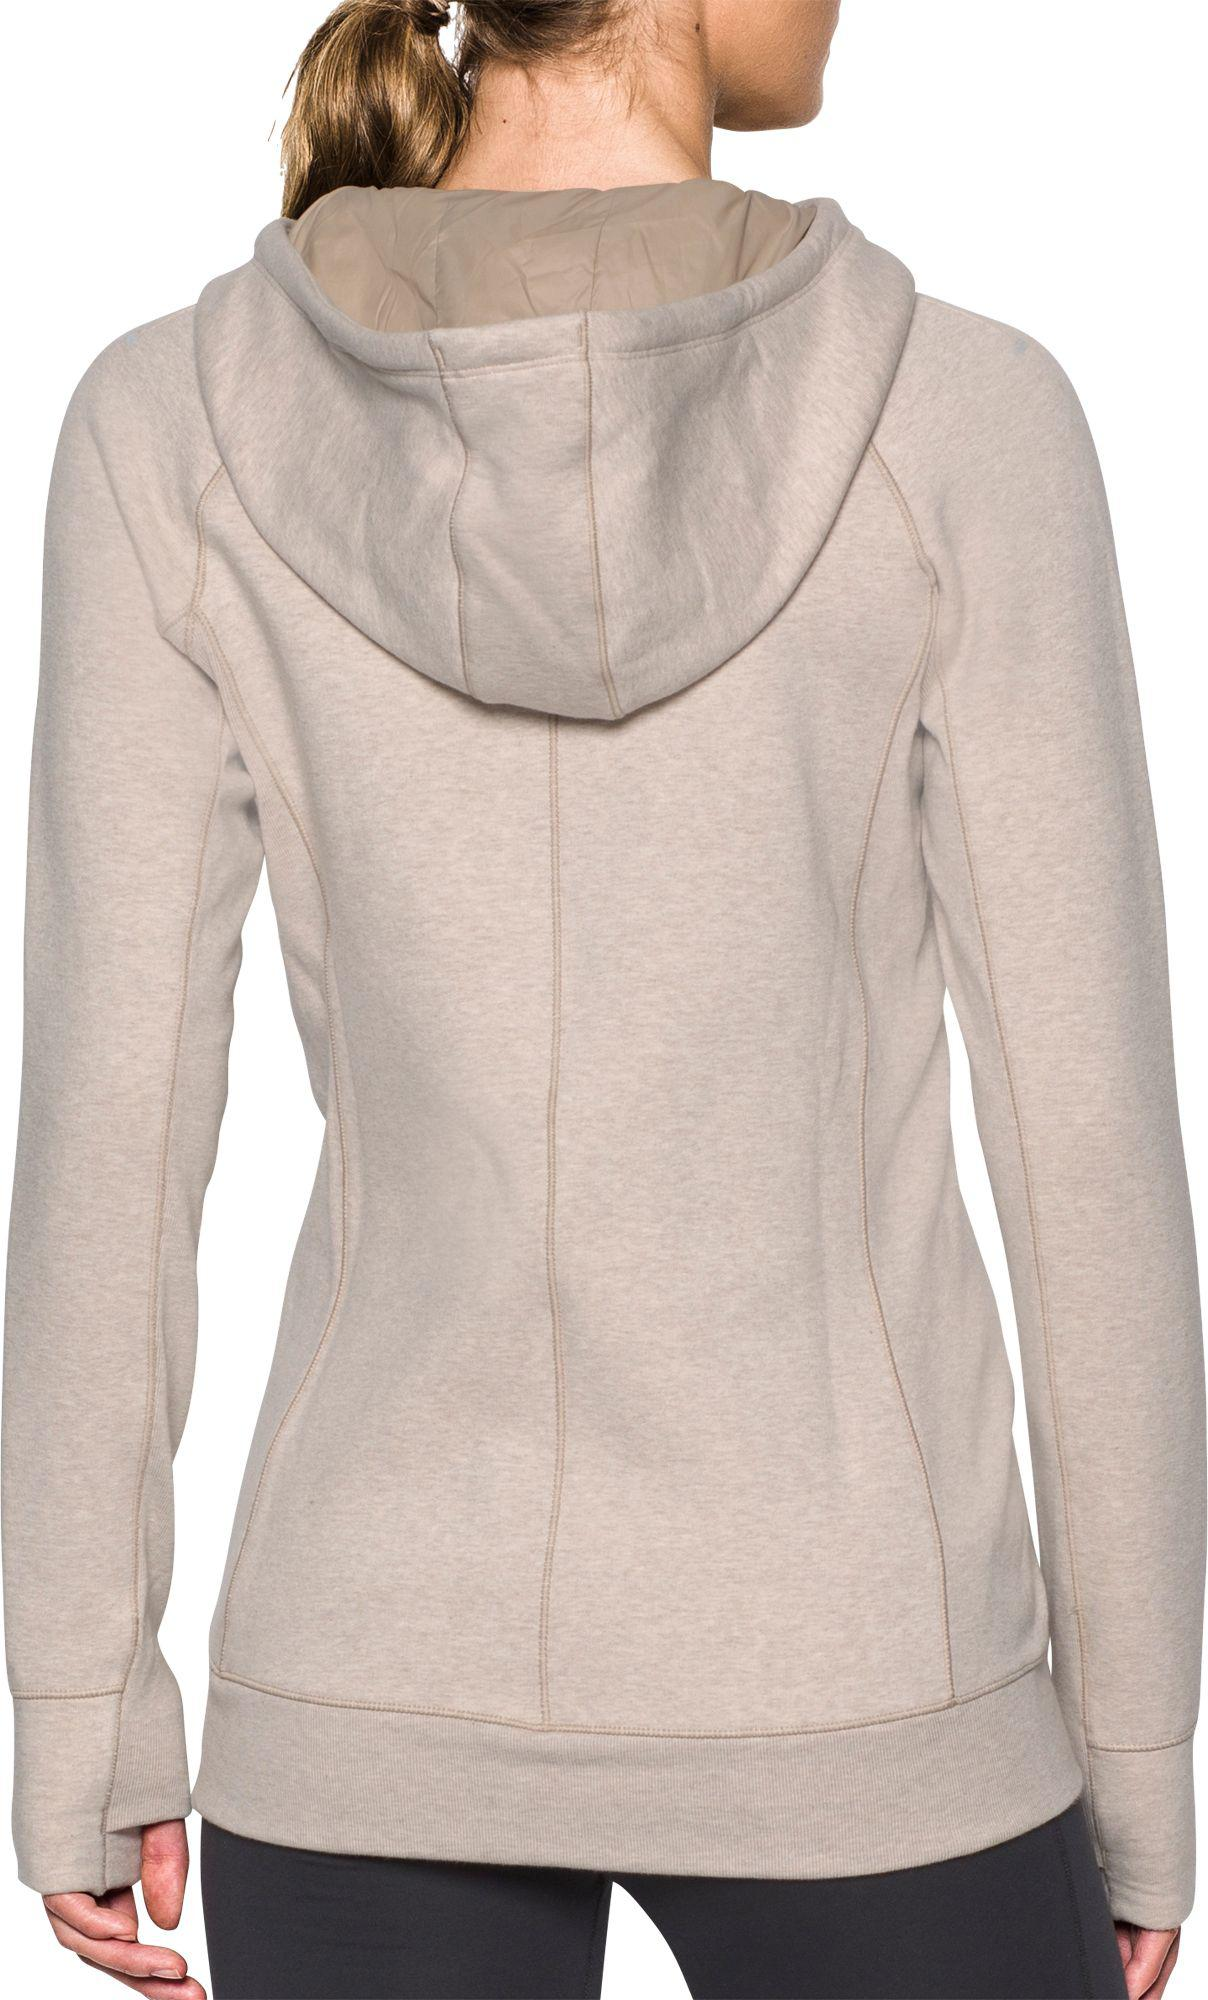 5194afb73e7a Lyst - Under Armour Varsity Fleece Full-zip Hoodie